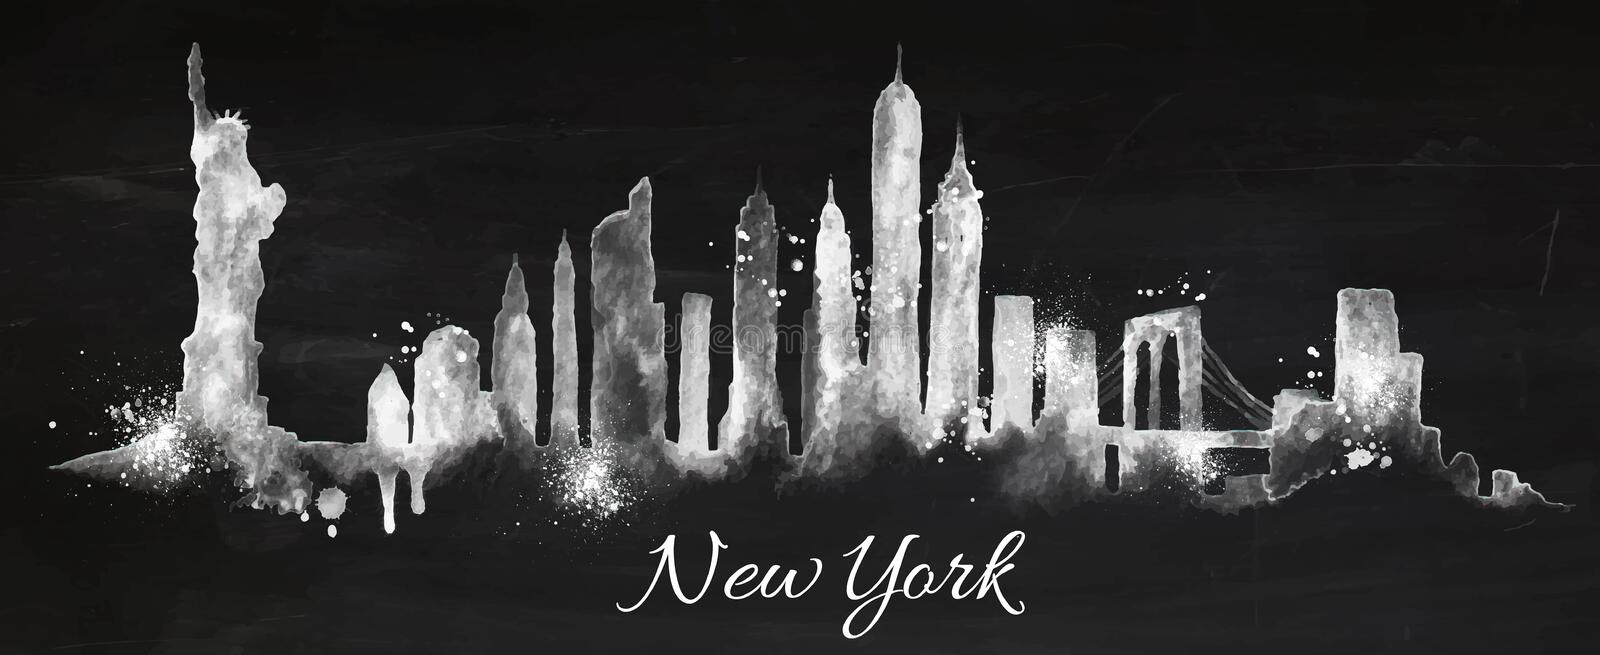 Craie New York de silhouette illustration de vecteur